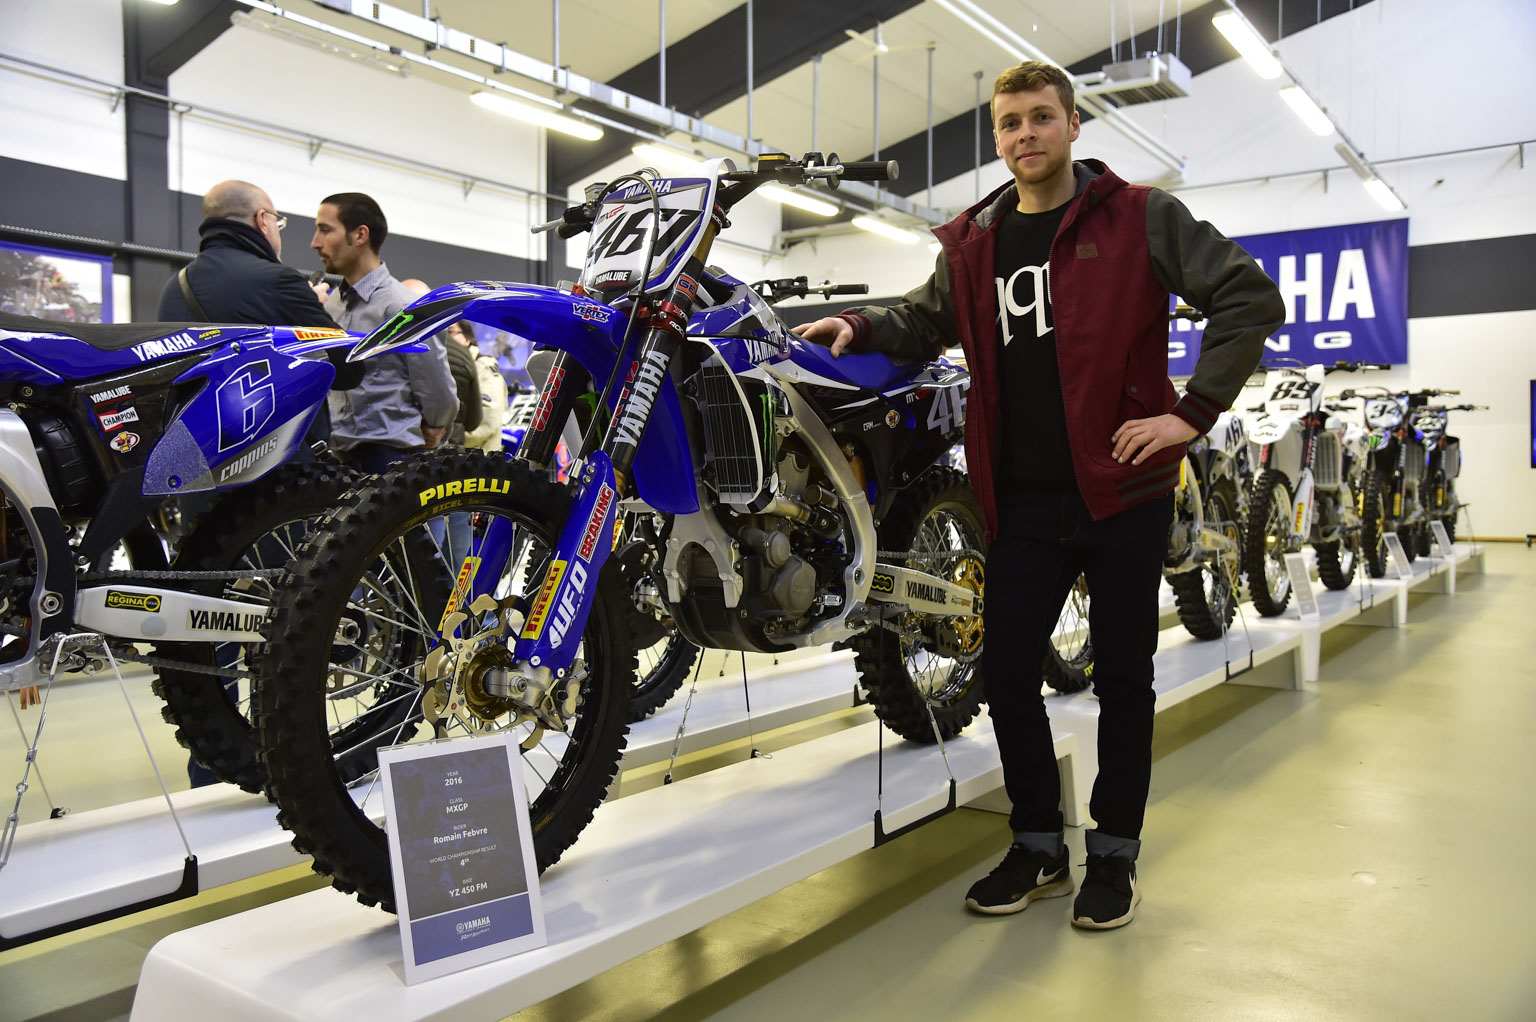 Romain Febvre and title-winning YZF450